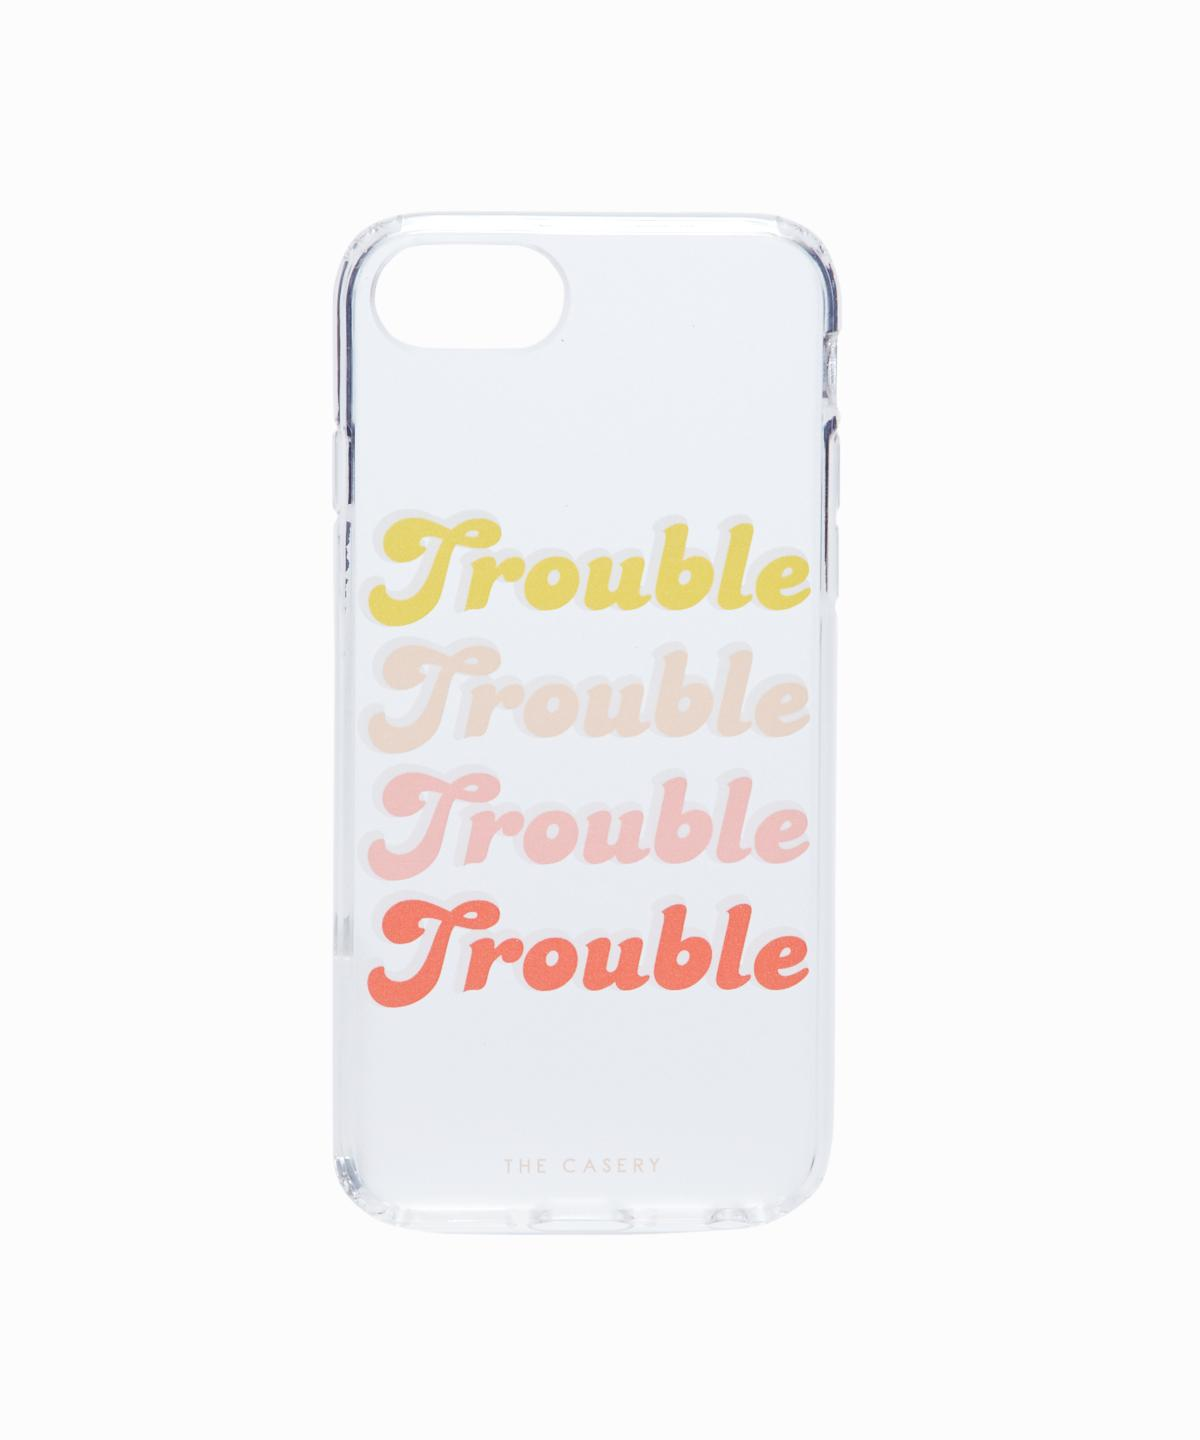 Trouble iPhone 6/6s/7 Case